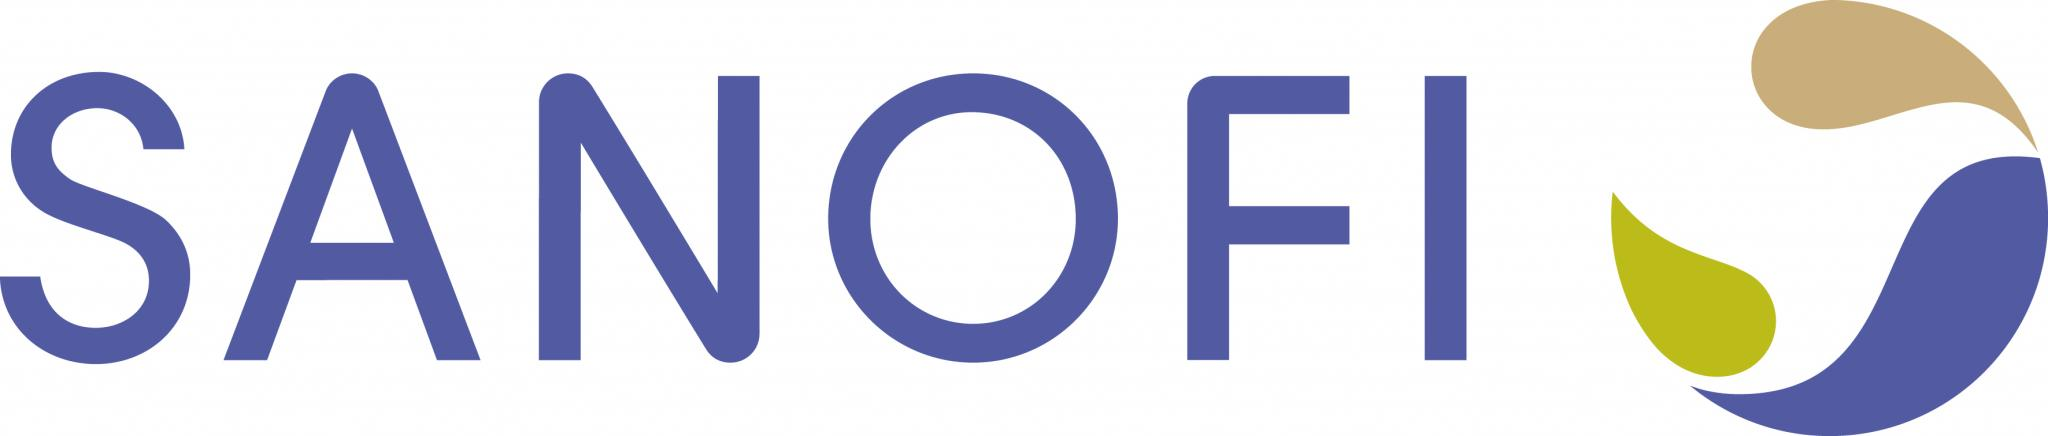 Logo_Sanofi_Horizontal_2011_4colors